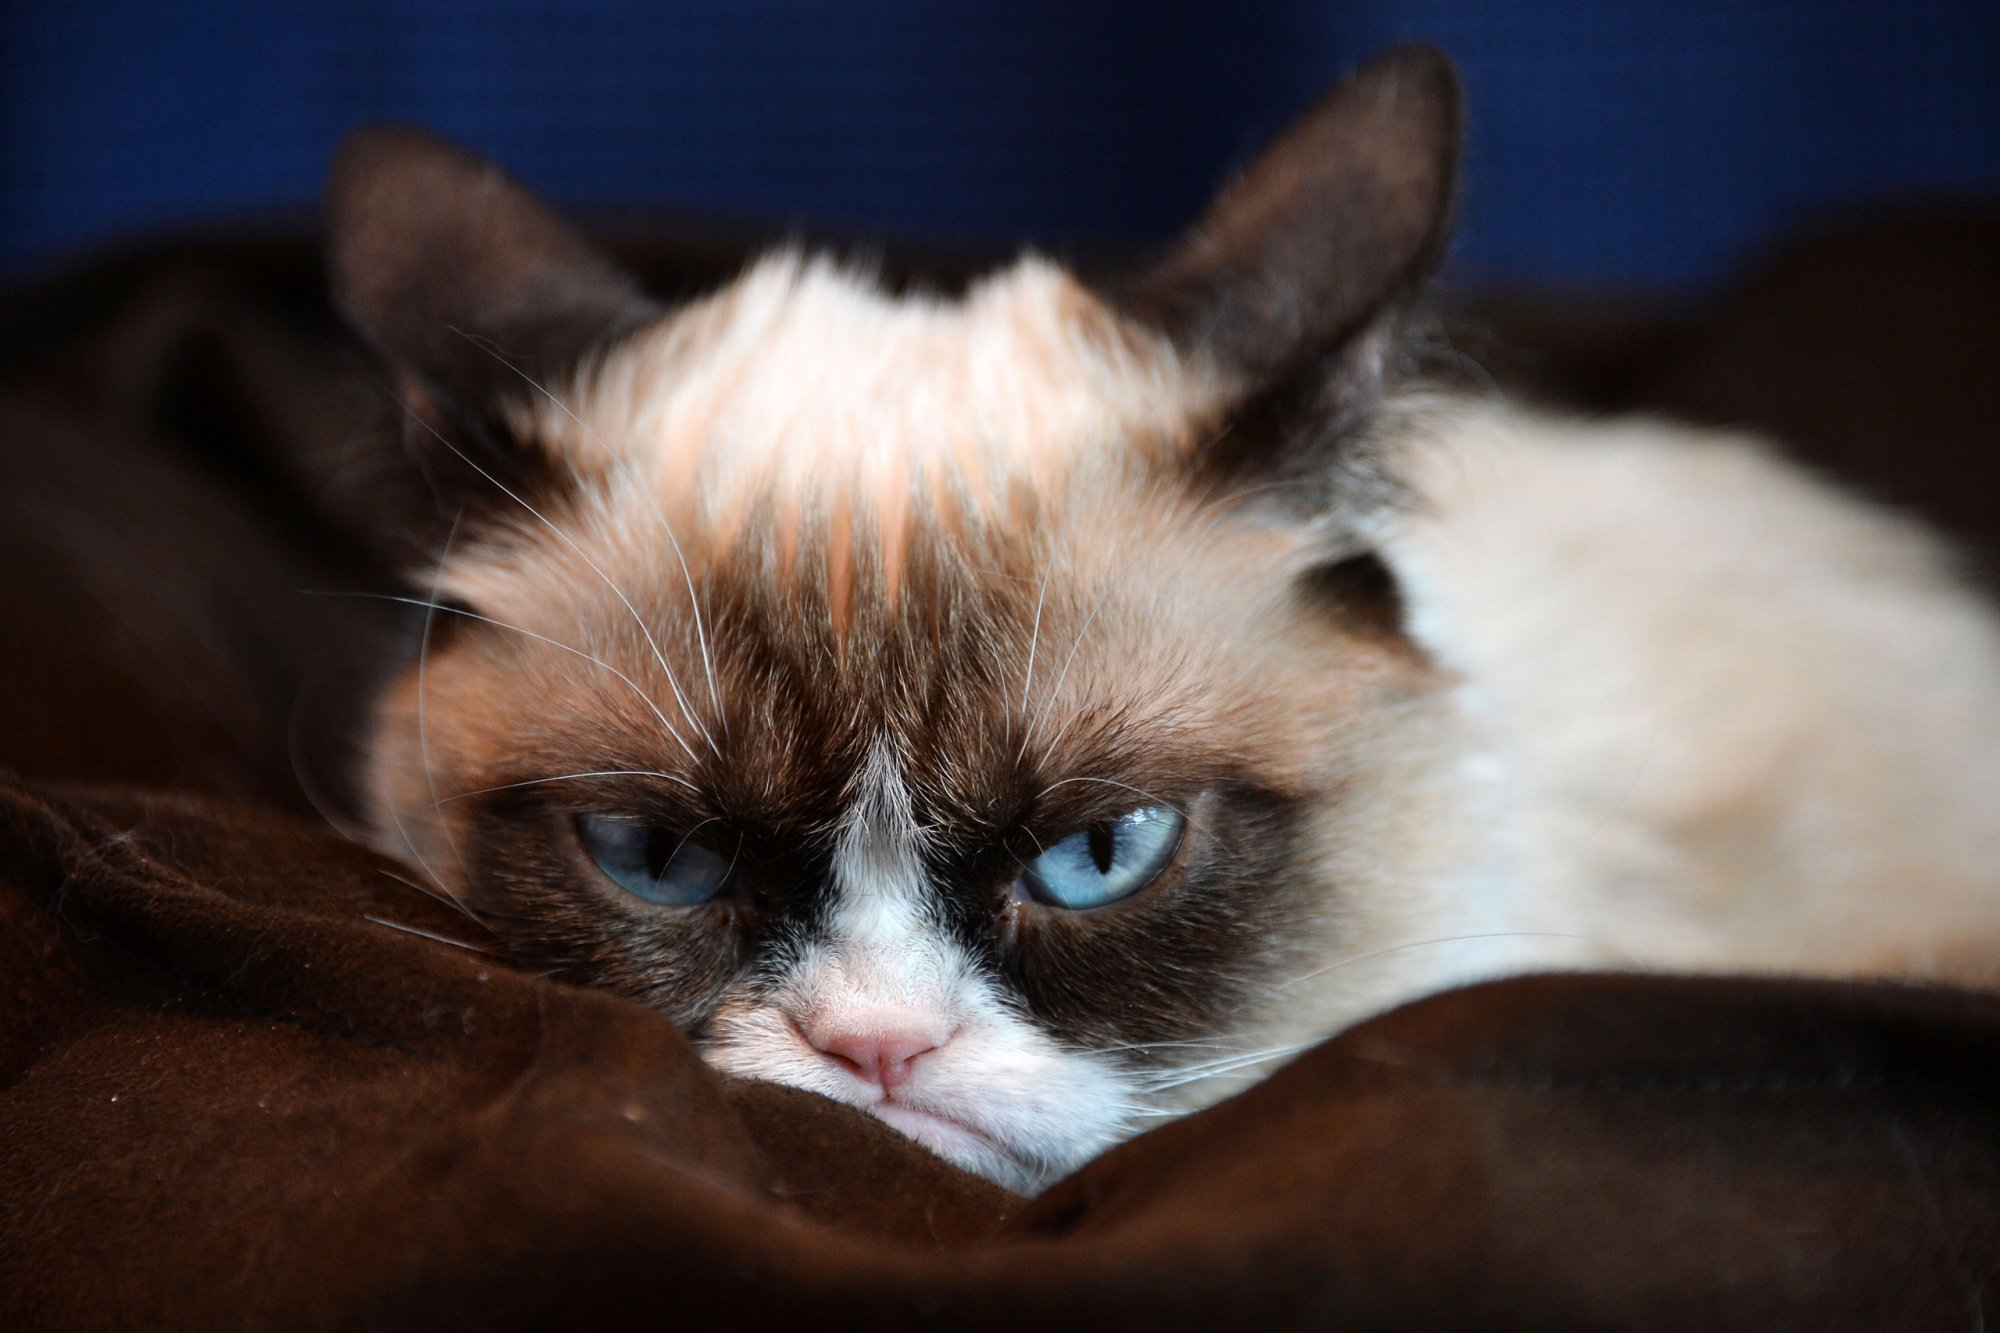 Grumpy Cat HD Desktop Wallpaper HD Desktop Wallpaper 2000x1333